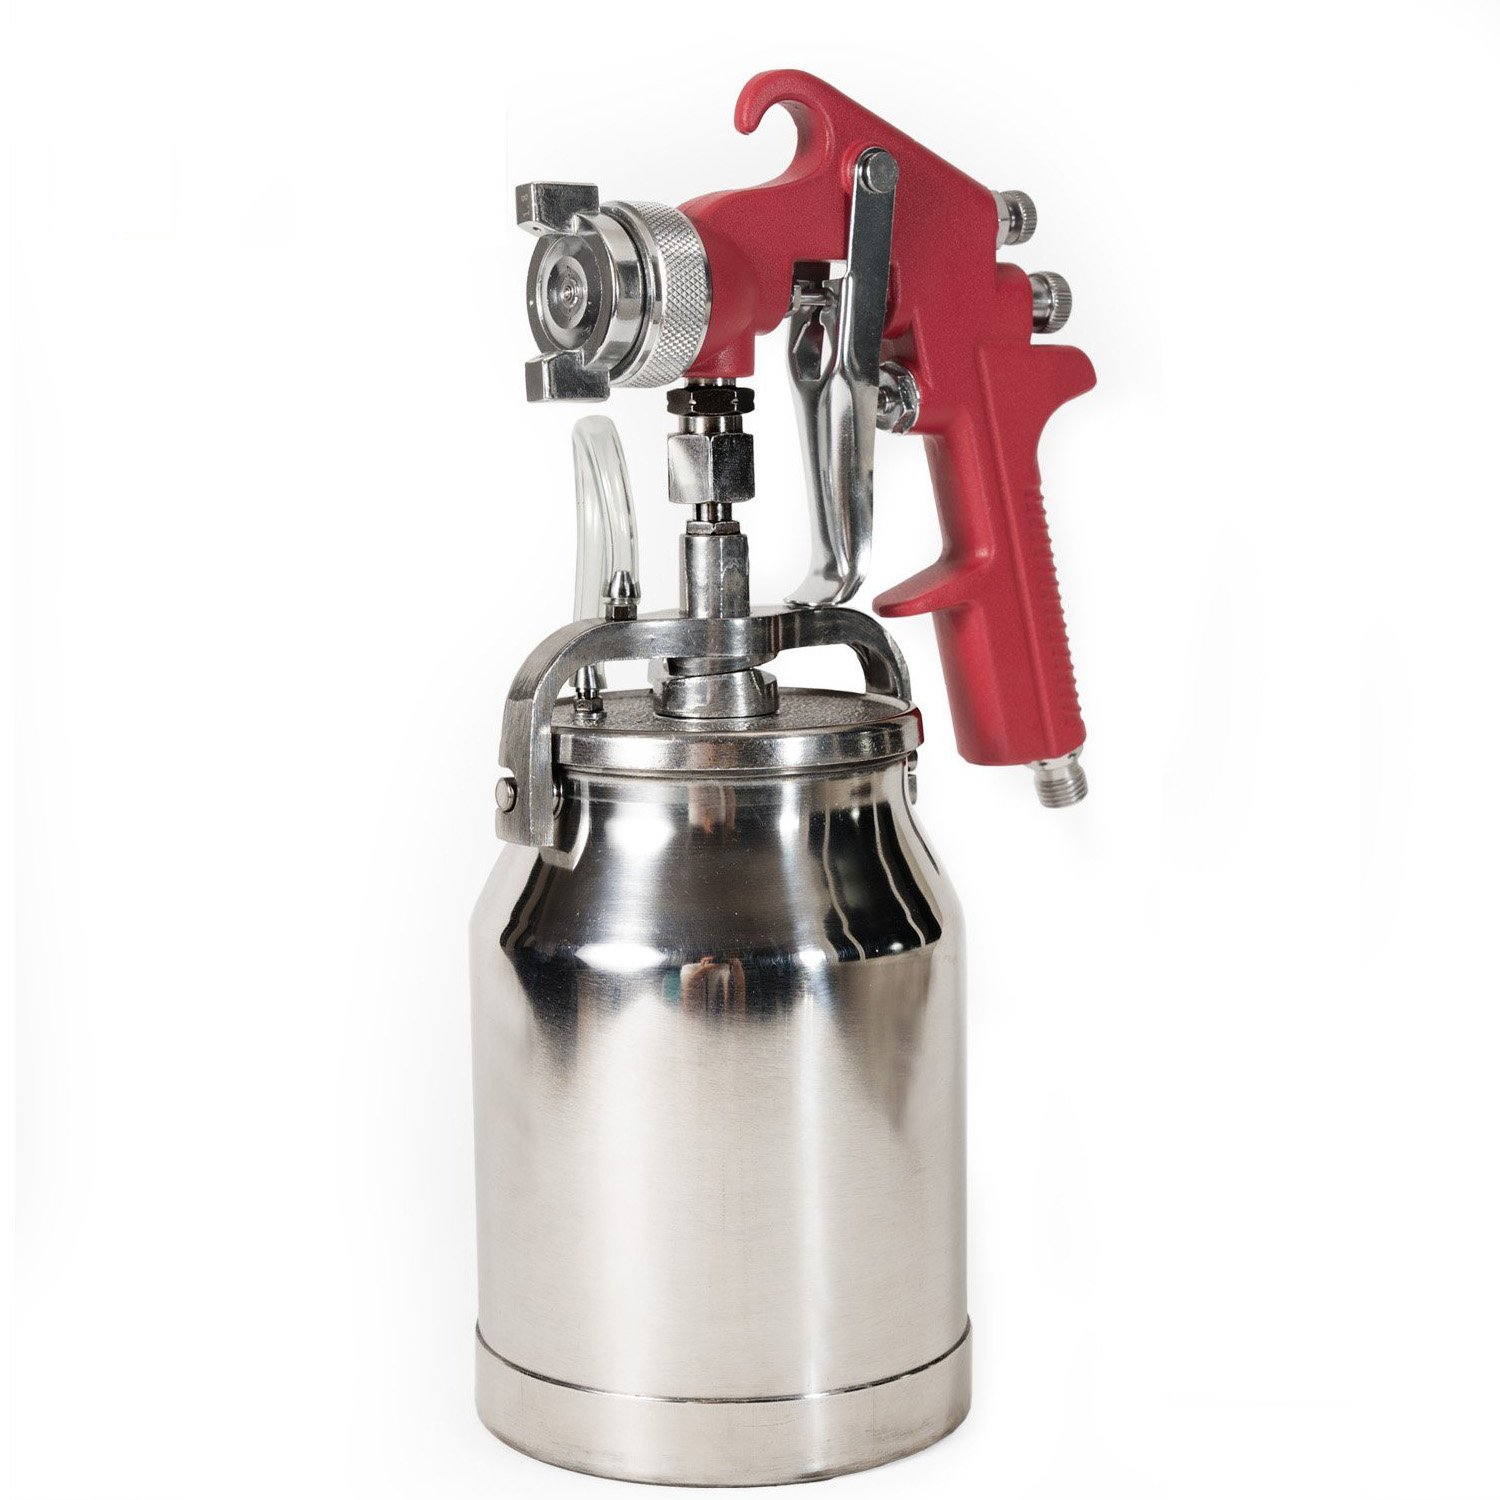 Top 5 Automotive Spray Guns